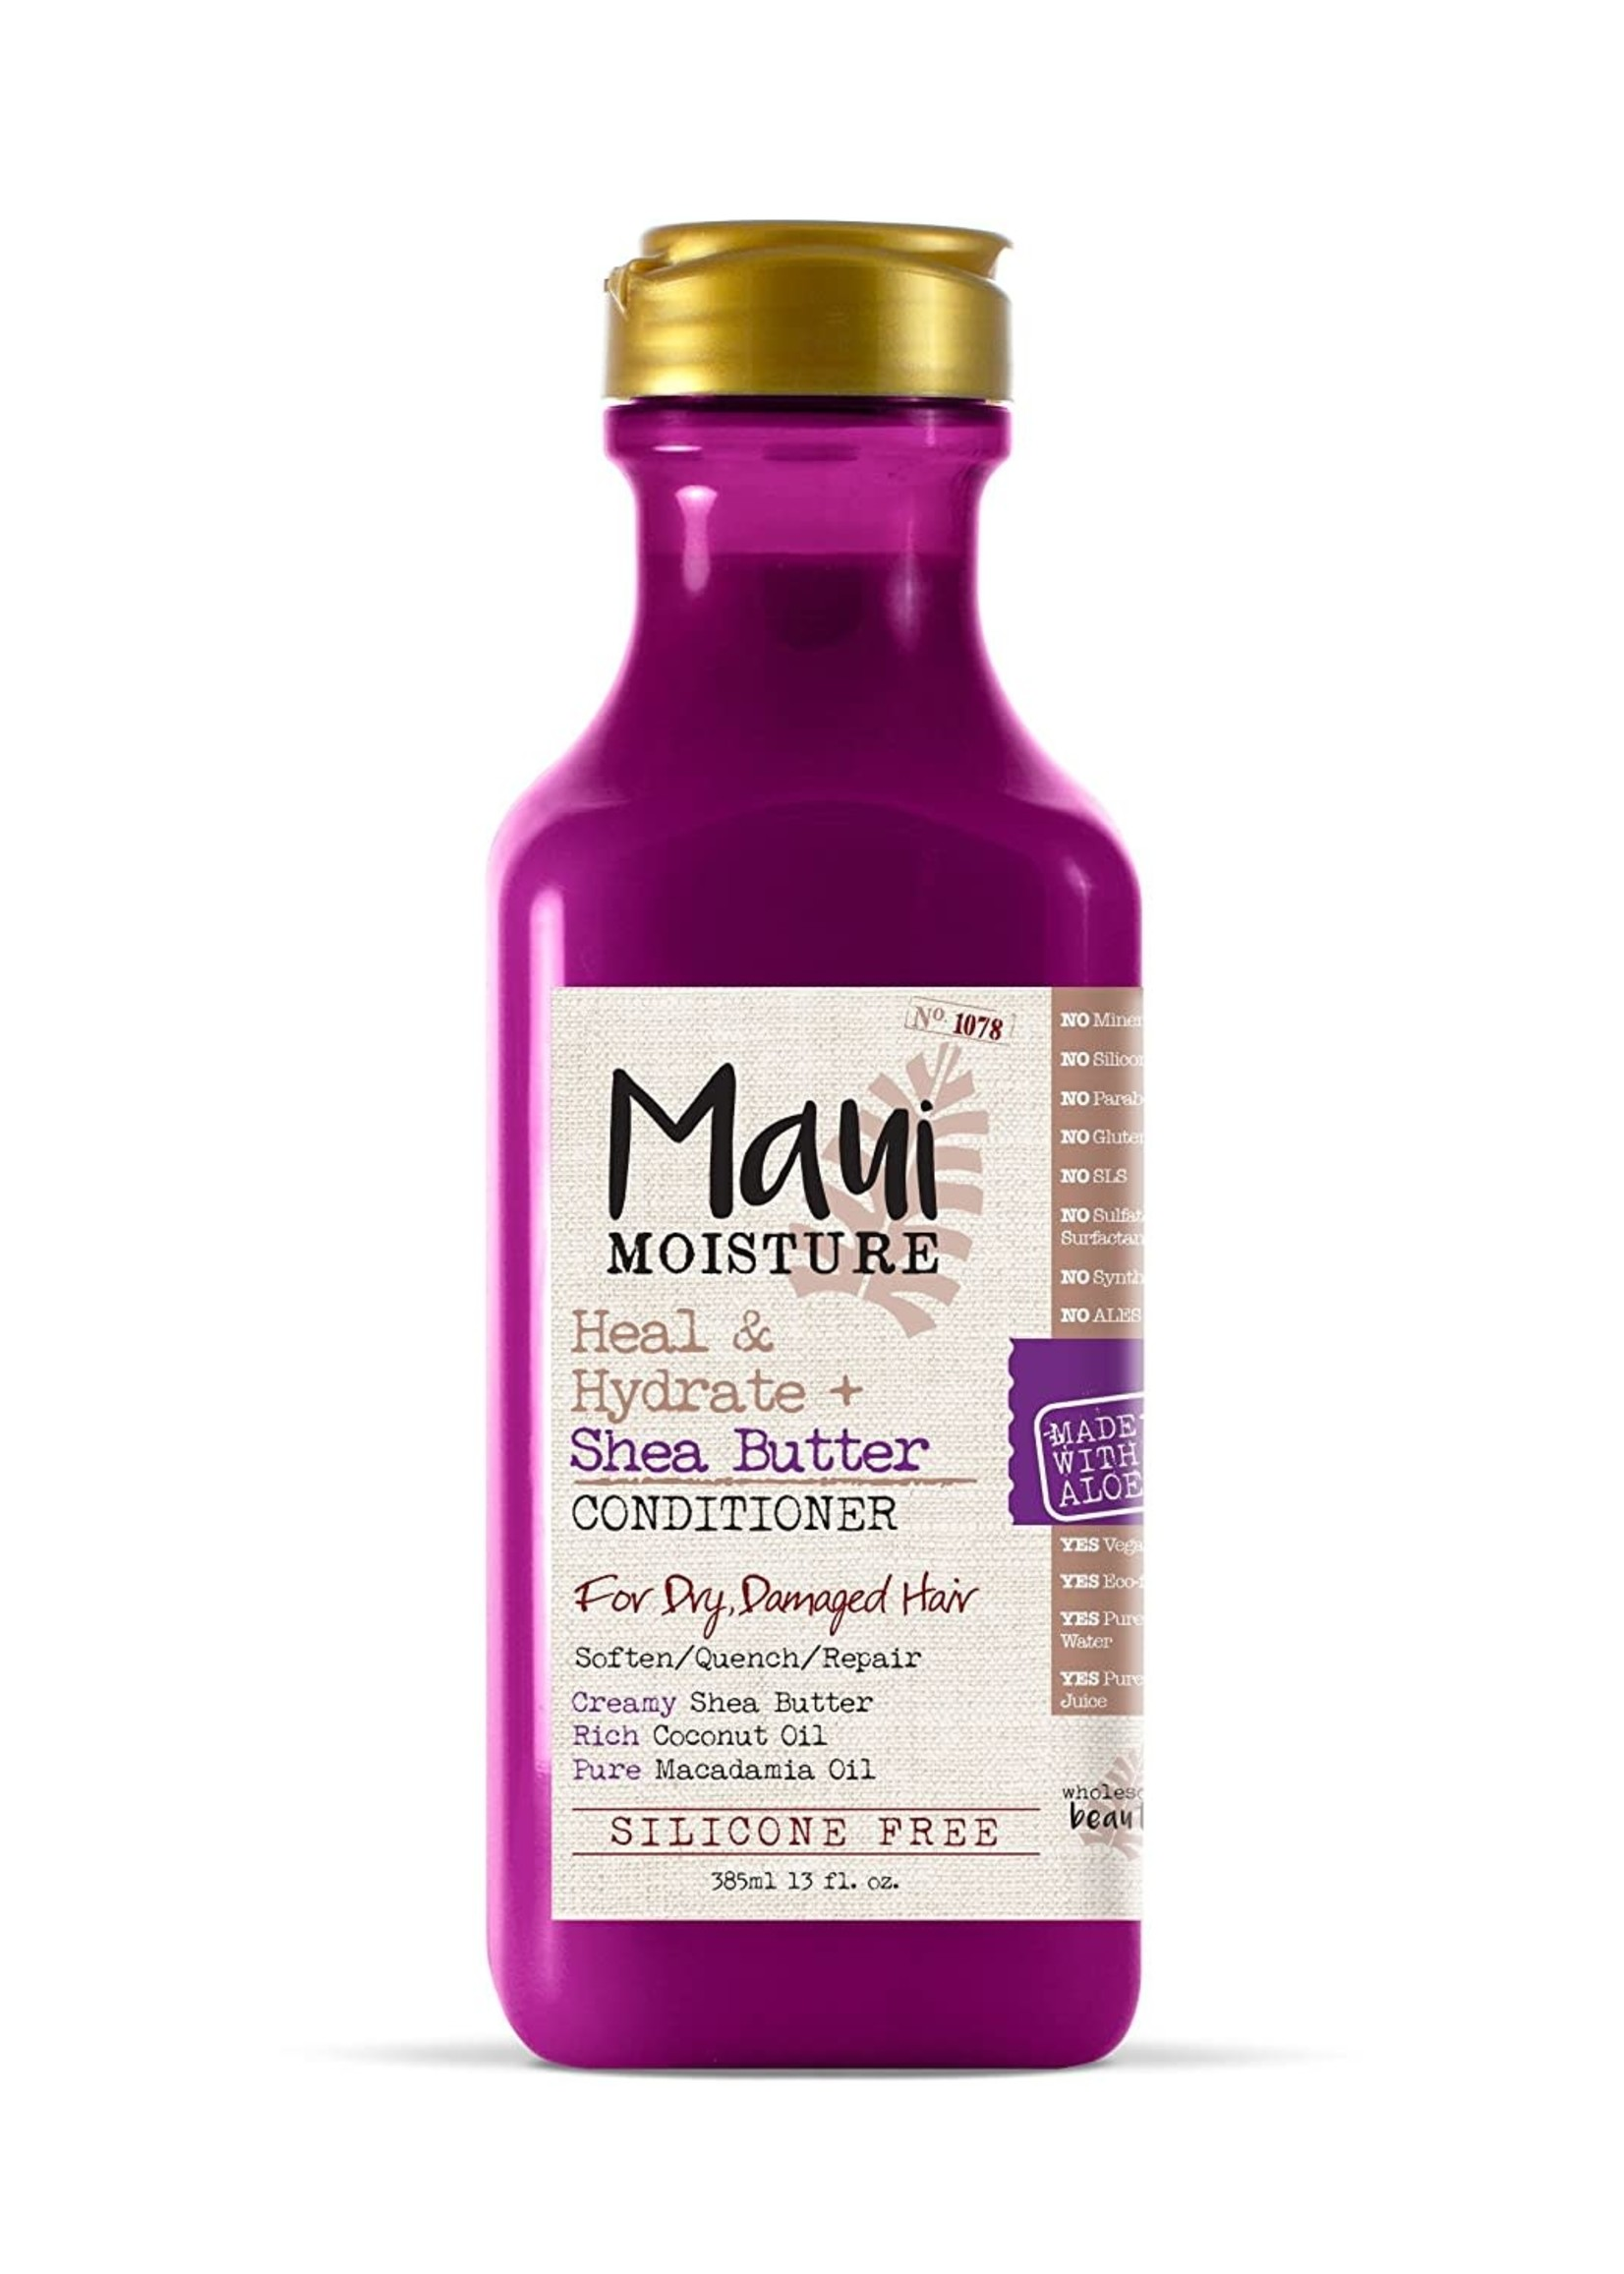 Maui Moist. Heal & Hydrate Shea Butter Conditioner